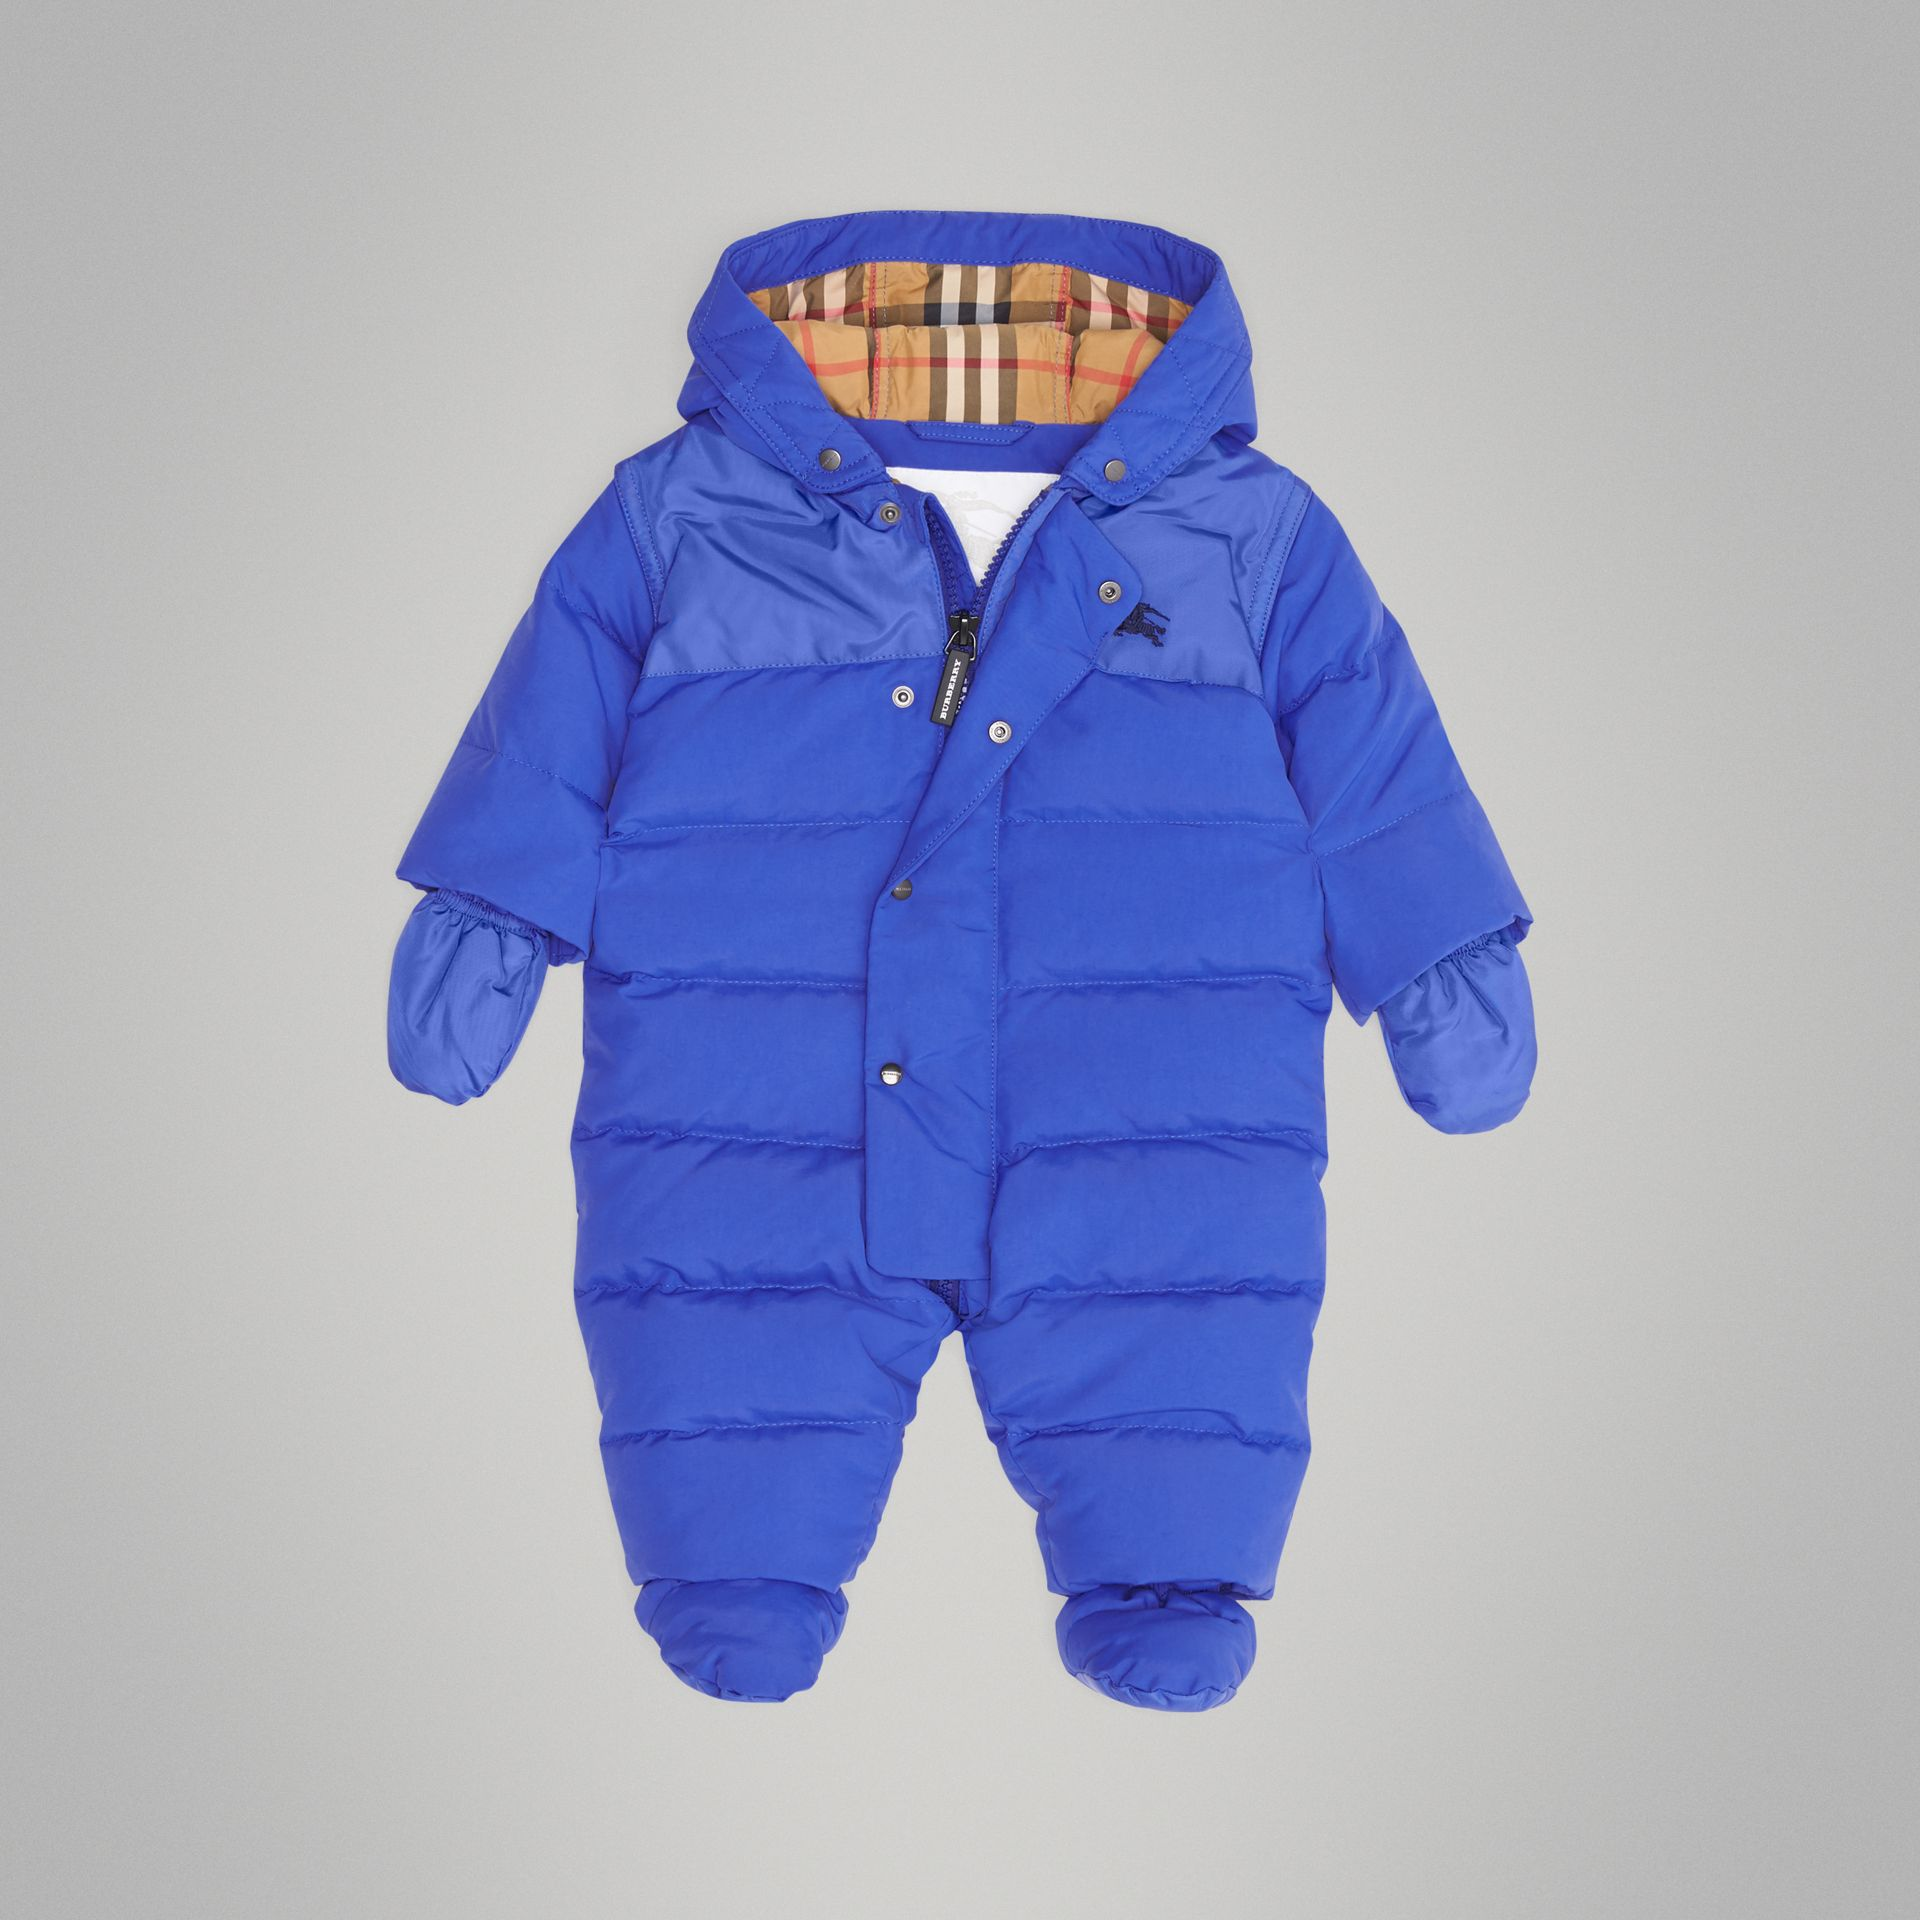 Down-filled Puffer Suit in Royal Blue - Children | Burberry United Kingdom - gallery image 2